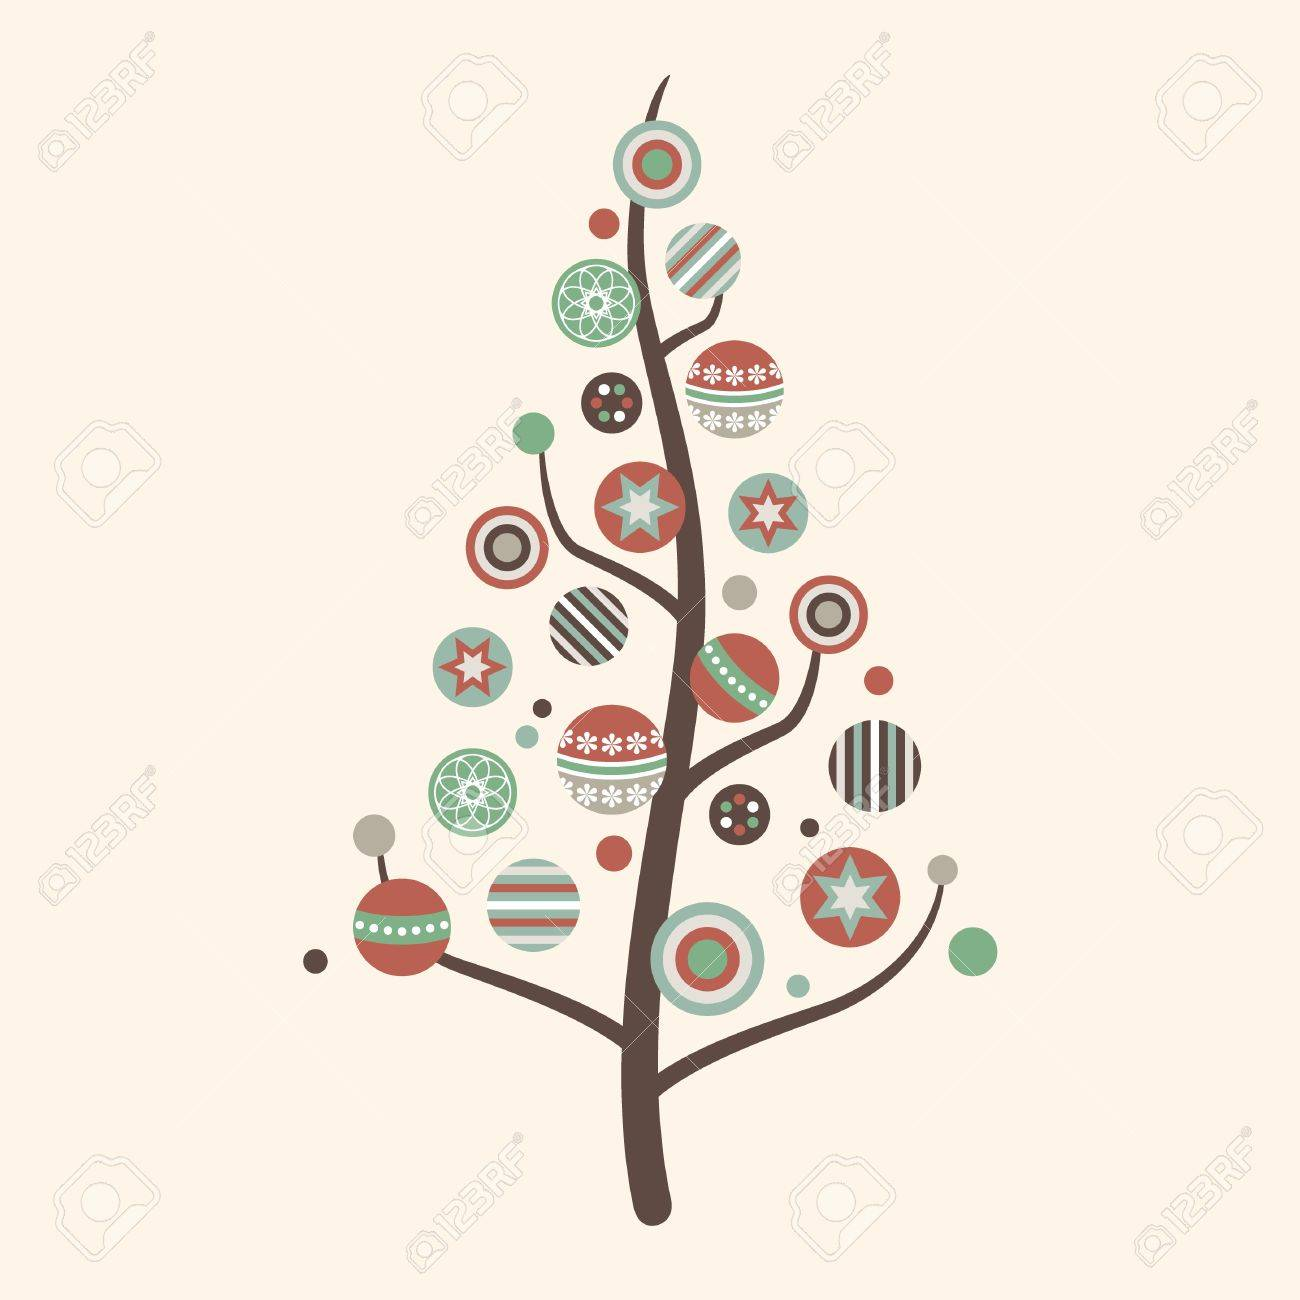 Colorful Christmas Tree Vector.Abstract Christmas Tree Vector In Vintage Colors